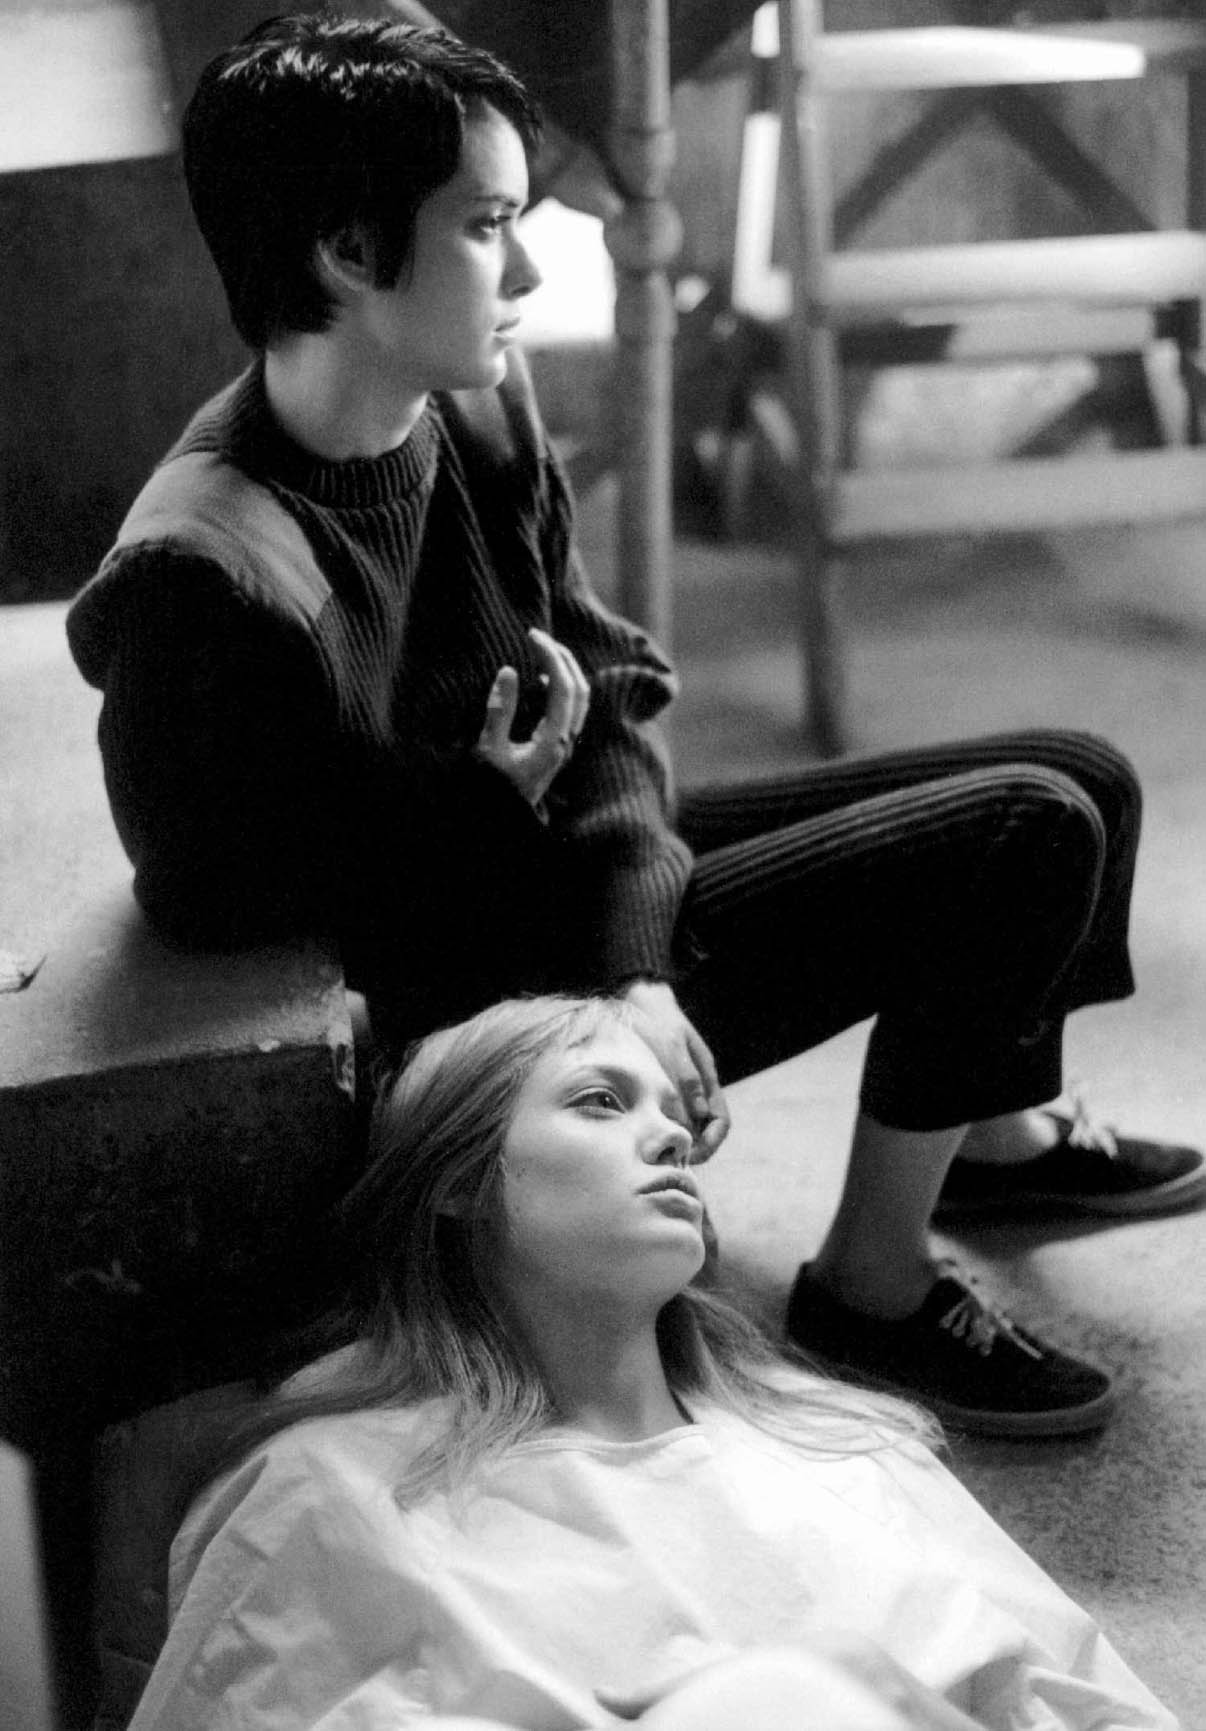 girl interupted Girl interrupted, was one of the first accurate stories about what goes on behind closed doors this vid was a real eye opener to our society as to the issues of mental health in the world this was about the fourth time i've watched this movie over the years.